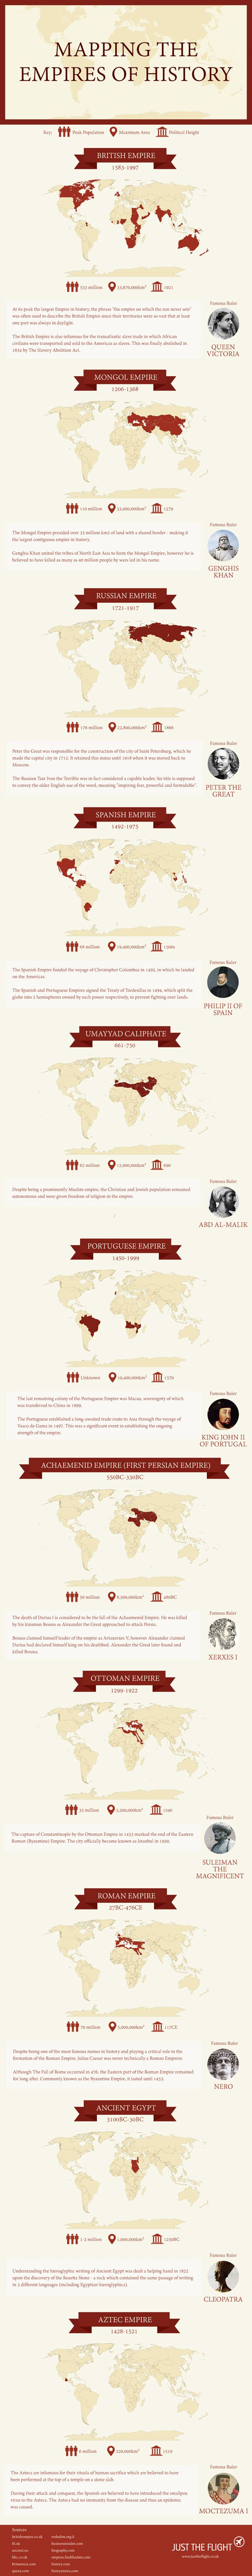 Mapping the Biggest Empires throughout History Infographic